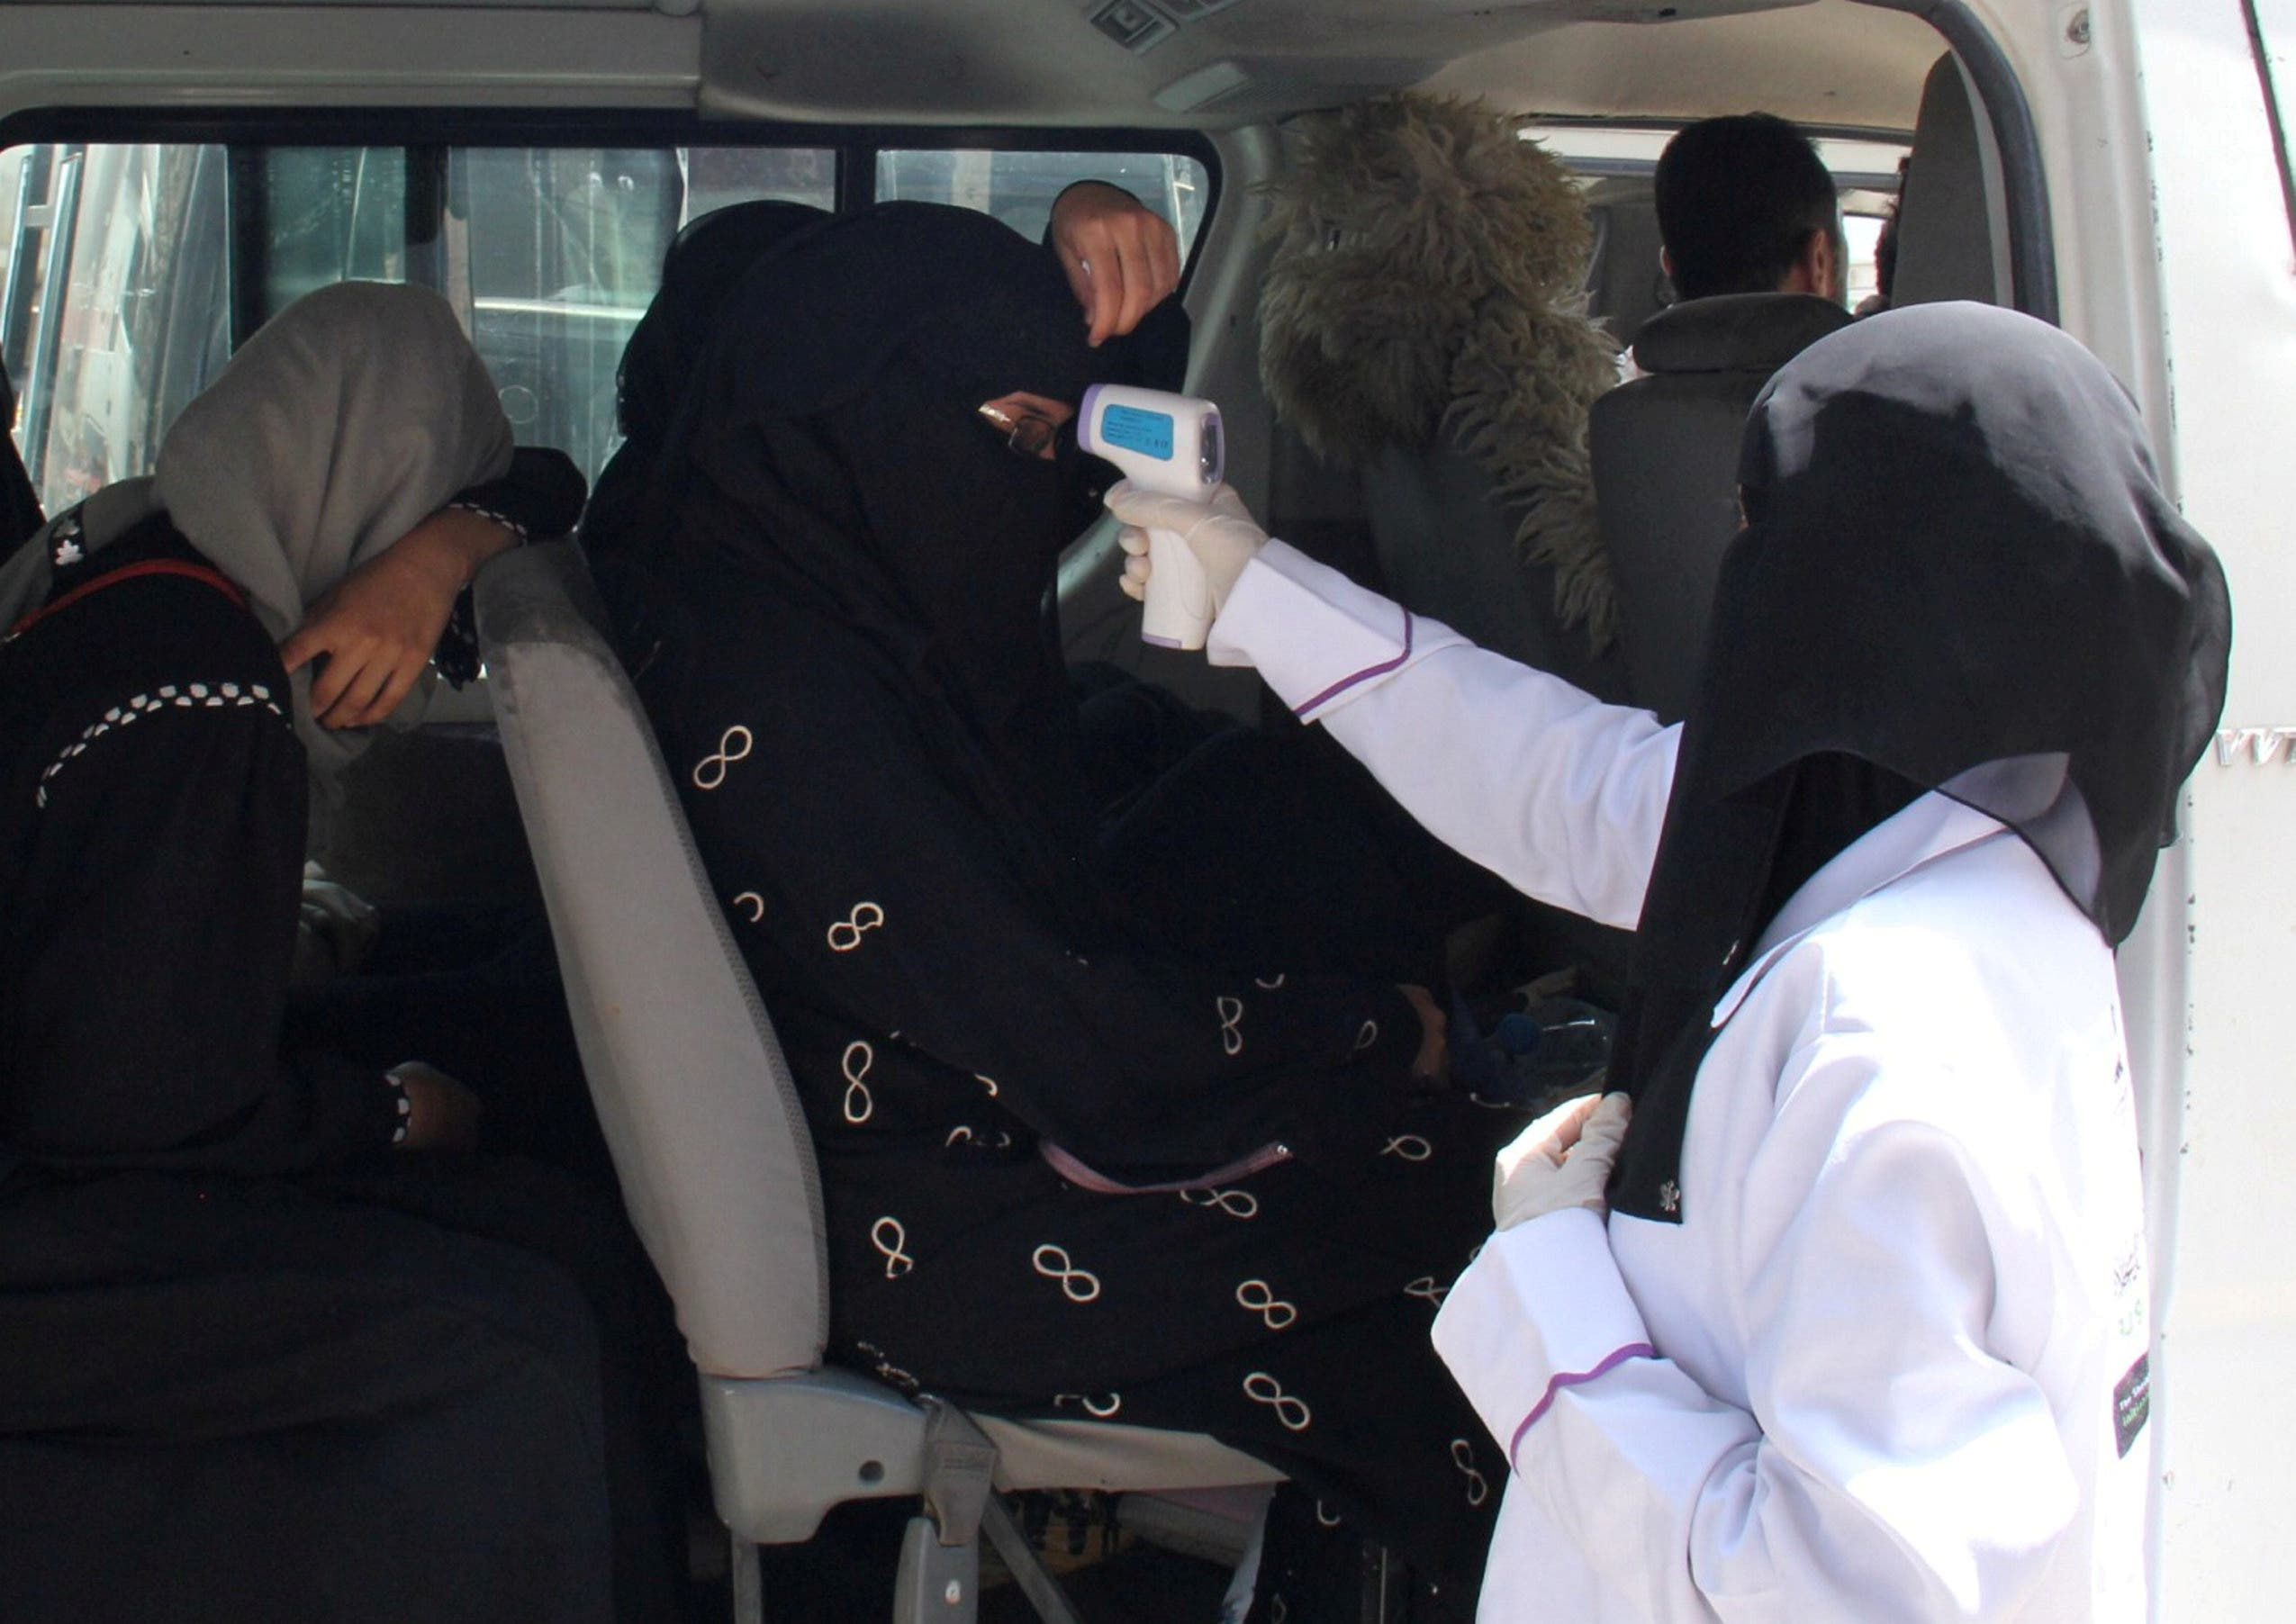 A health worker takes temperature of passengers of a van, amid fear of coronavirus disease, on the outskirts of Taiz, Yemen on April 12, 2020. (Reuters)